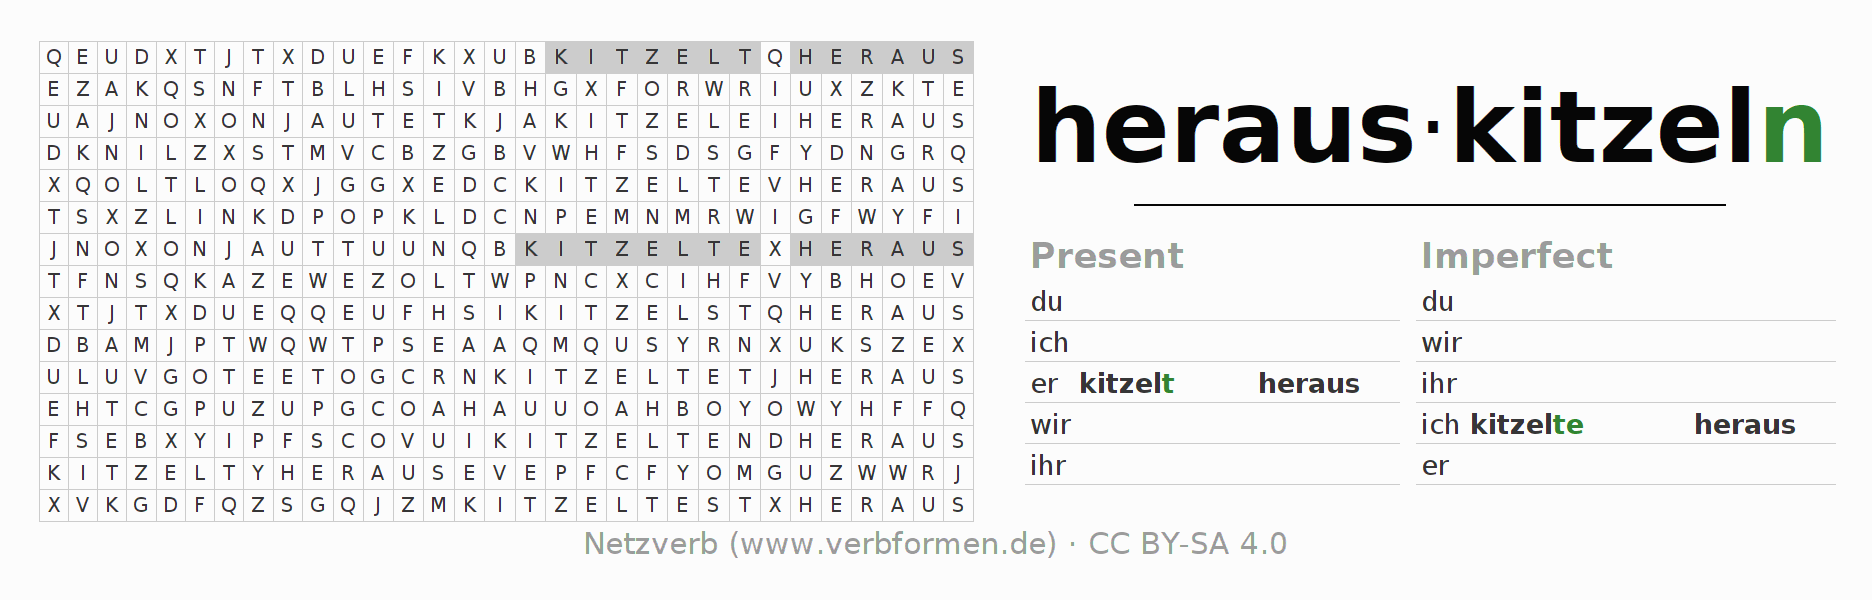 Word search puzzle for the conjugation of the verb herauskitzeln